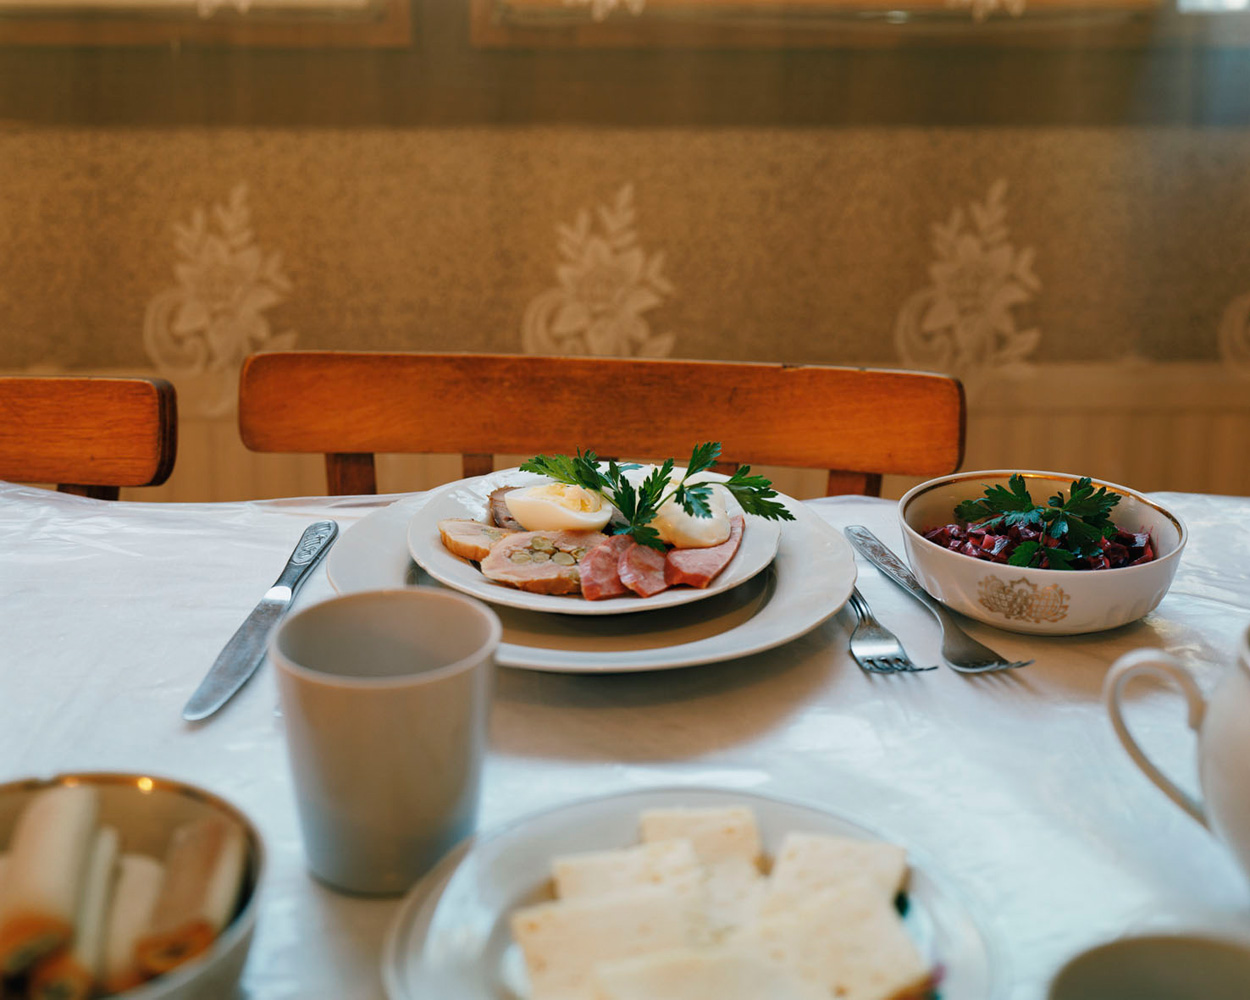 """Trip to Chernobyl – Ukraine. 2008.Breakfast in the exclusion zone: """"the quality of food is guaranteed"""" says the tourist brochure. Entrance to the Chernobyl exclusion zone is possible only with the help of permits, which can be organized by tour groups."""